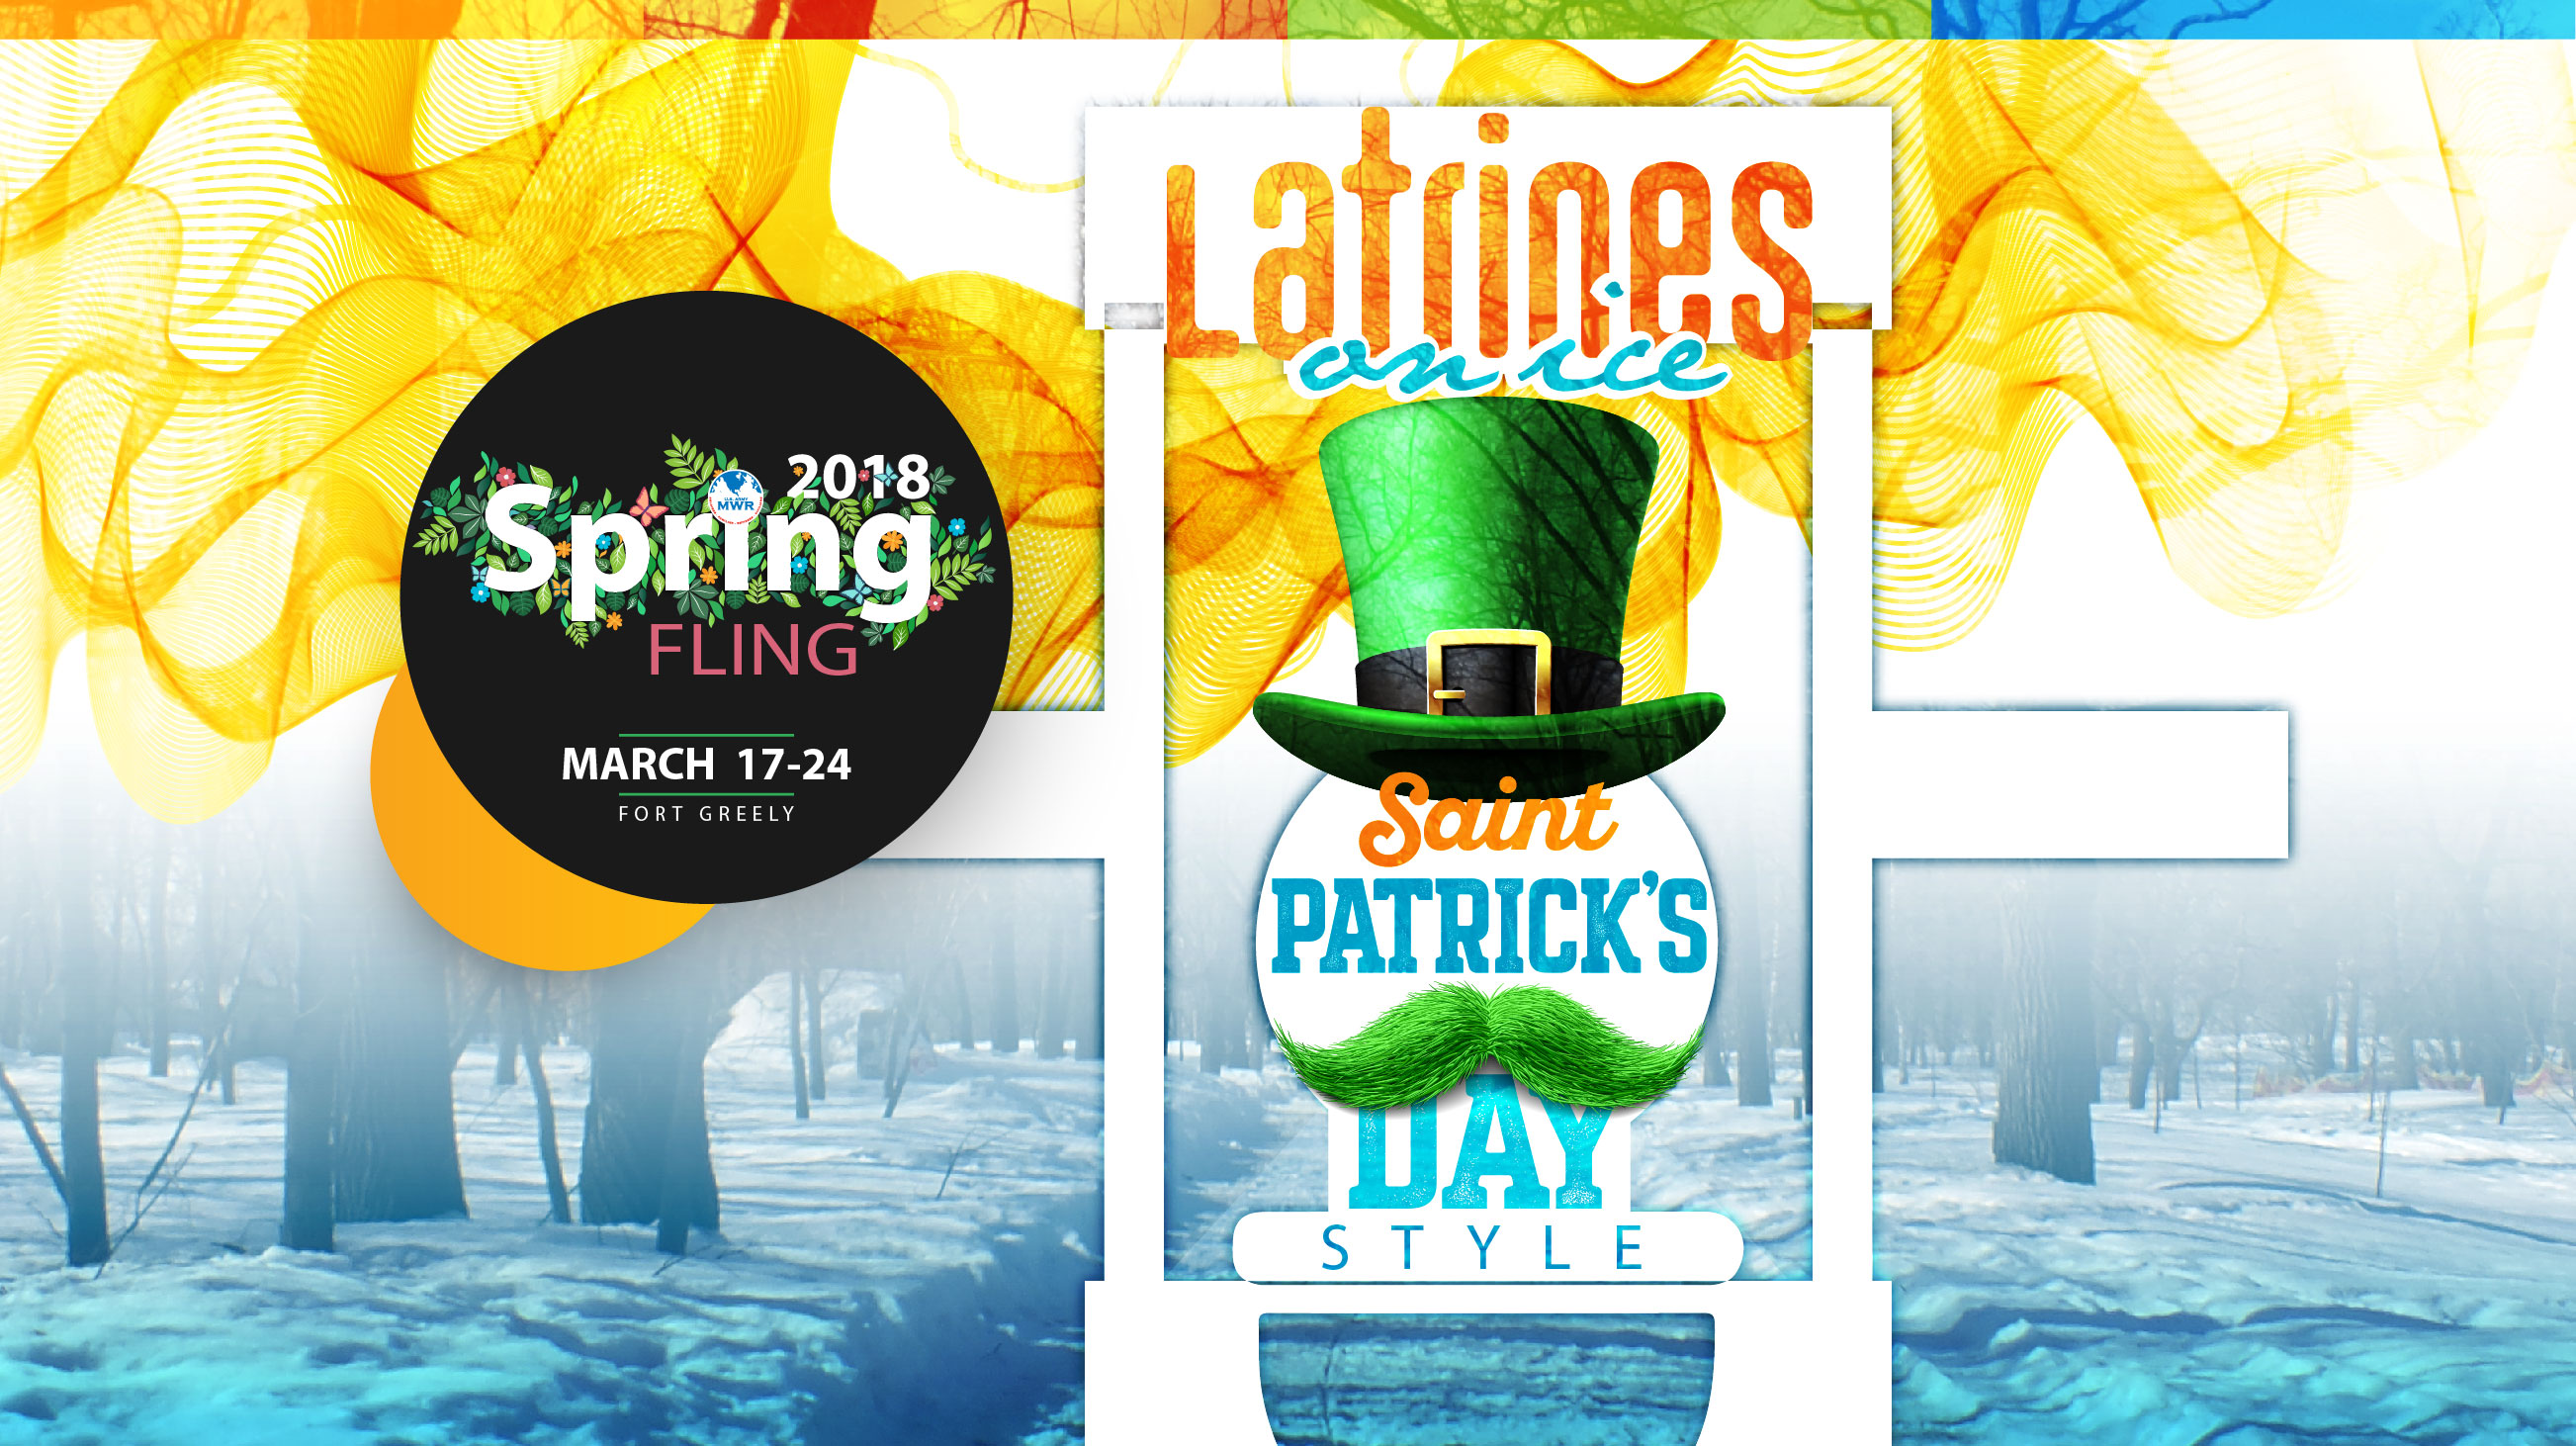 Latrines on Ice - St. Patrick's Day Style!